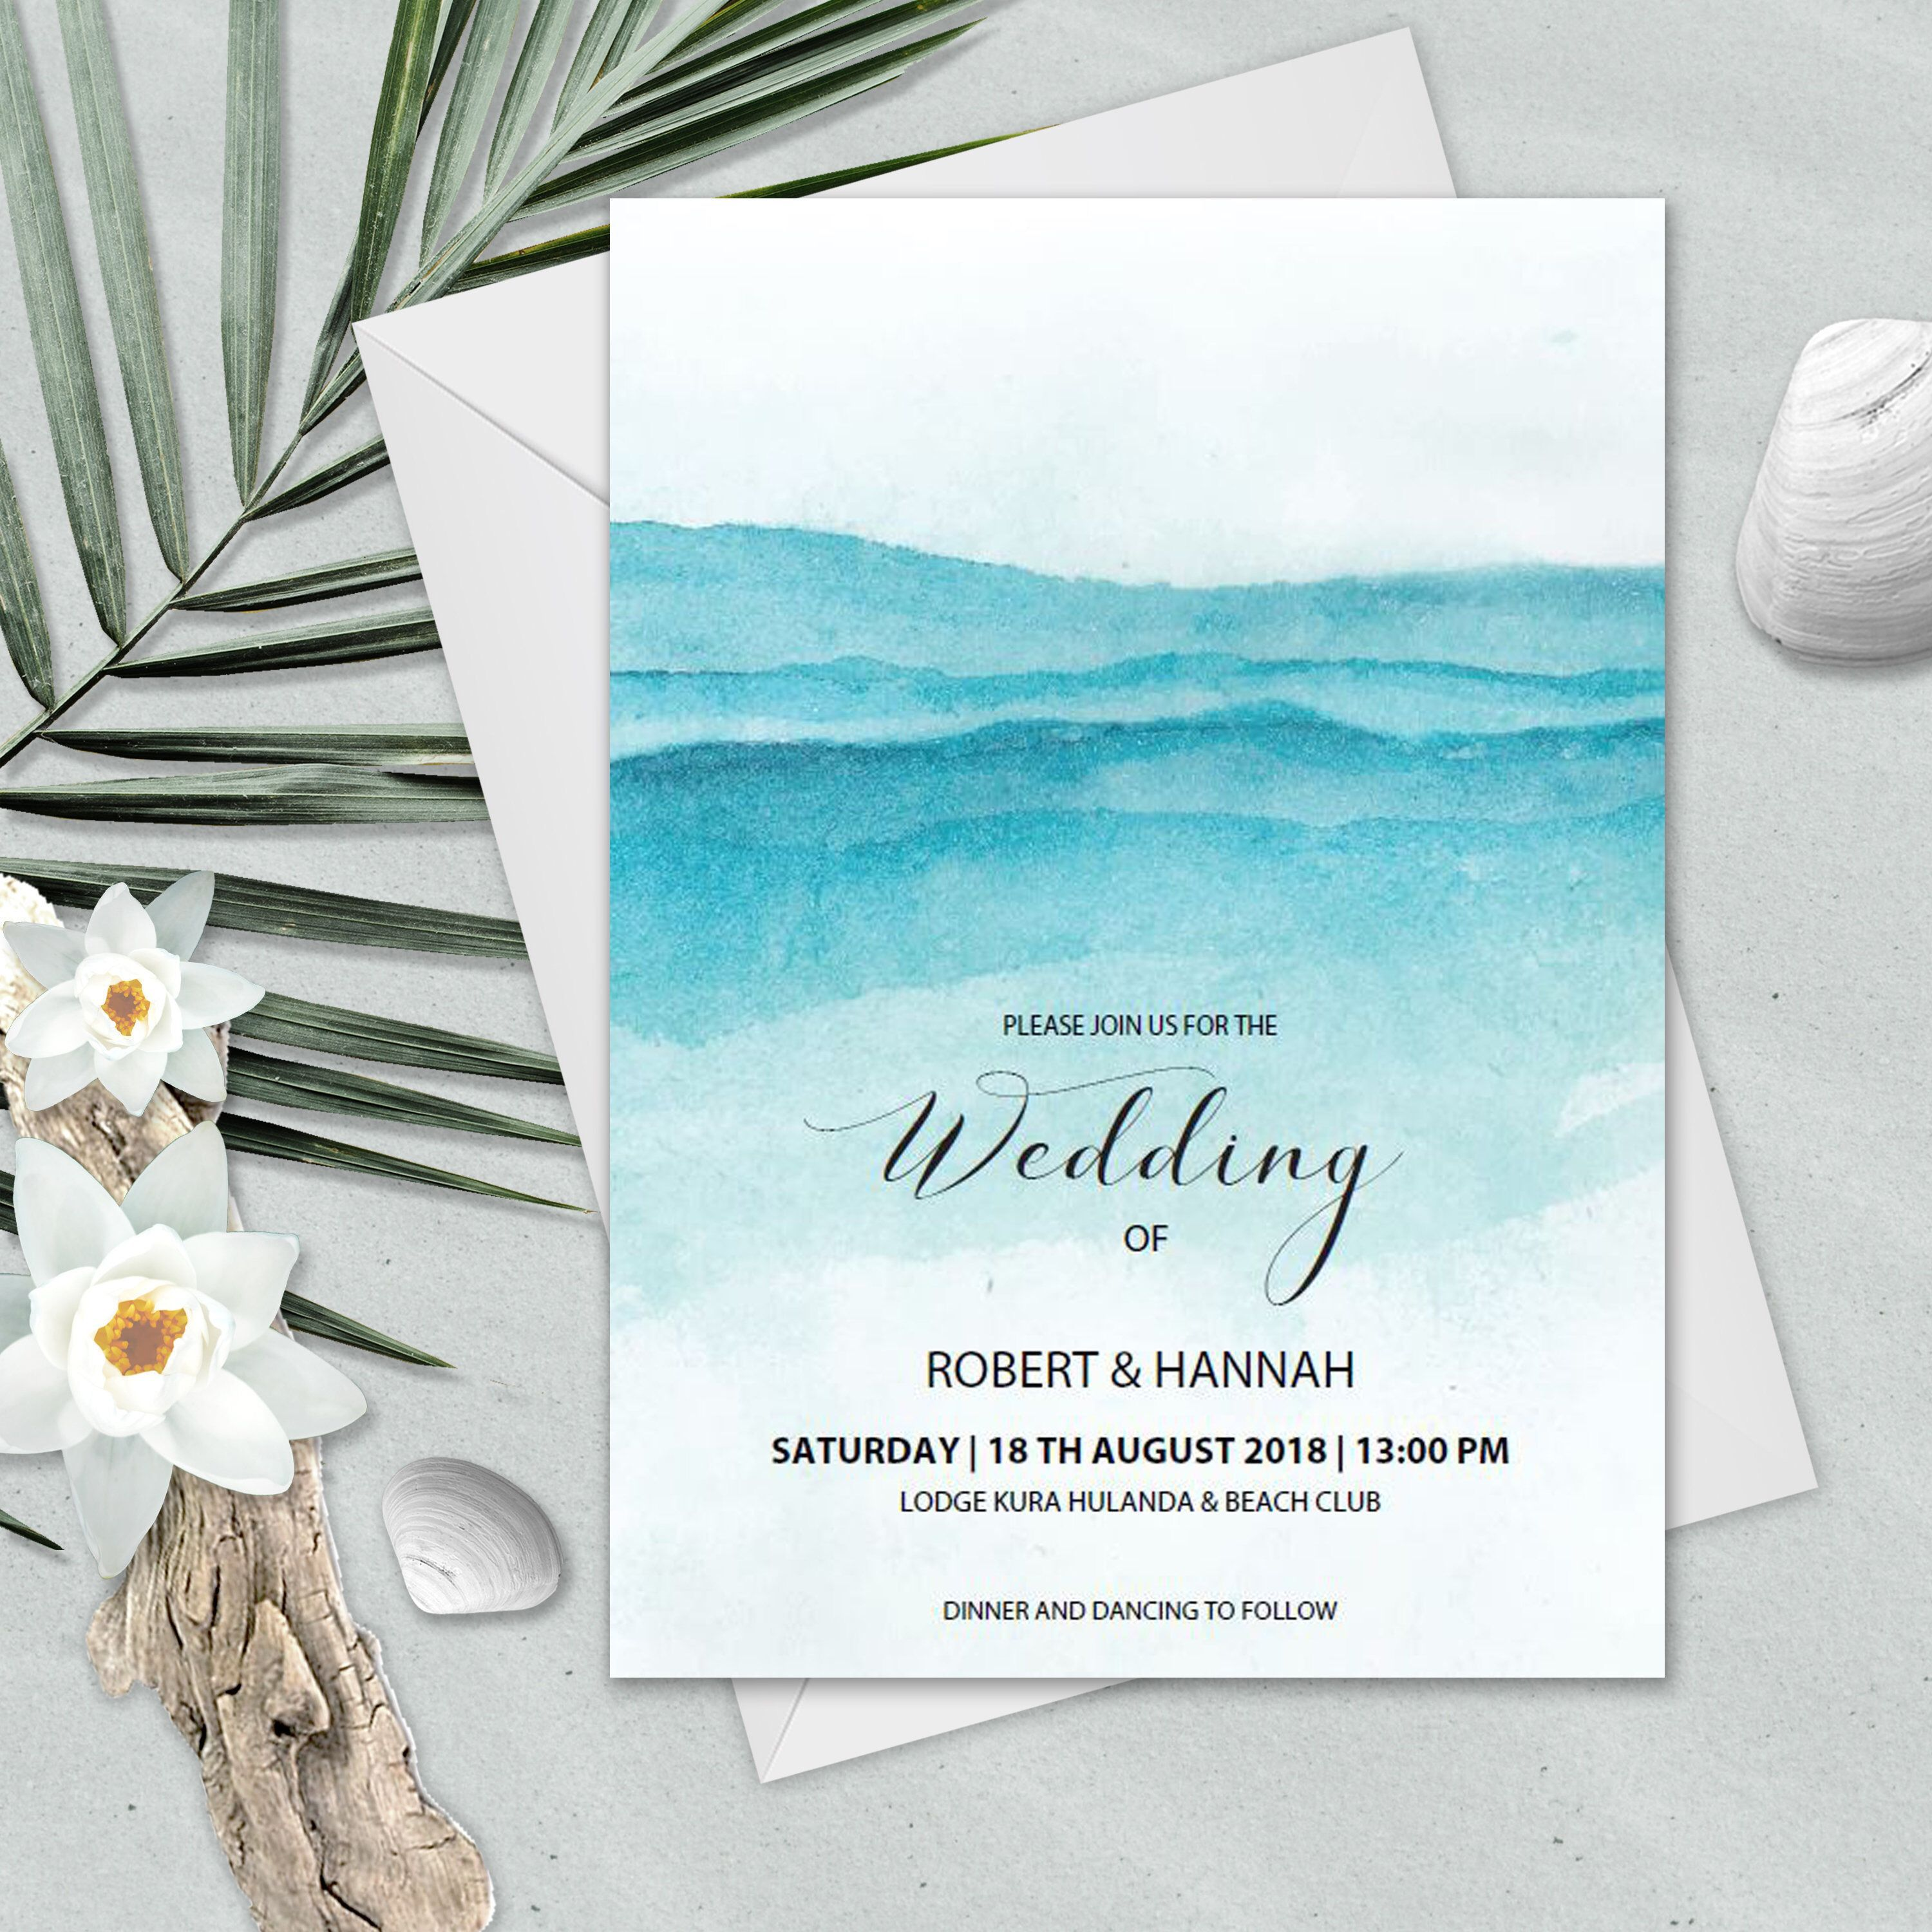 006 Unforgettable Beach Wedding Invitation Template Design  Templates Free Download For WordFull